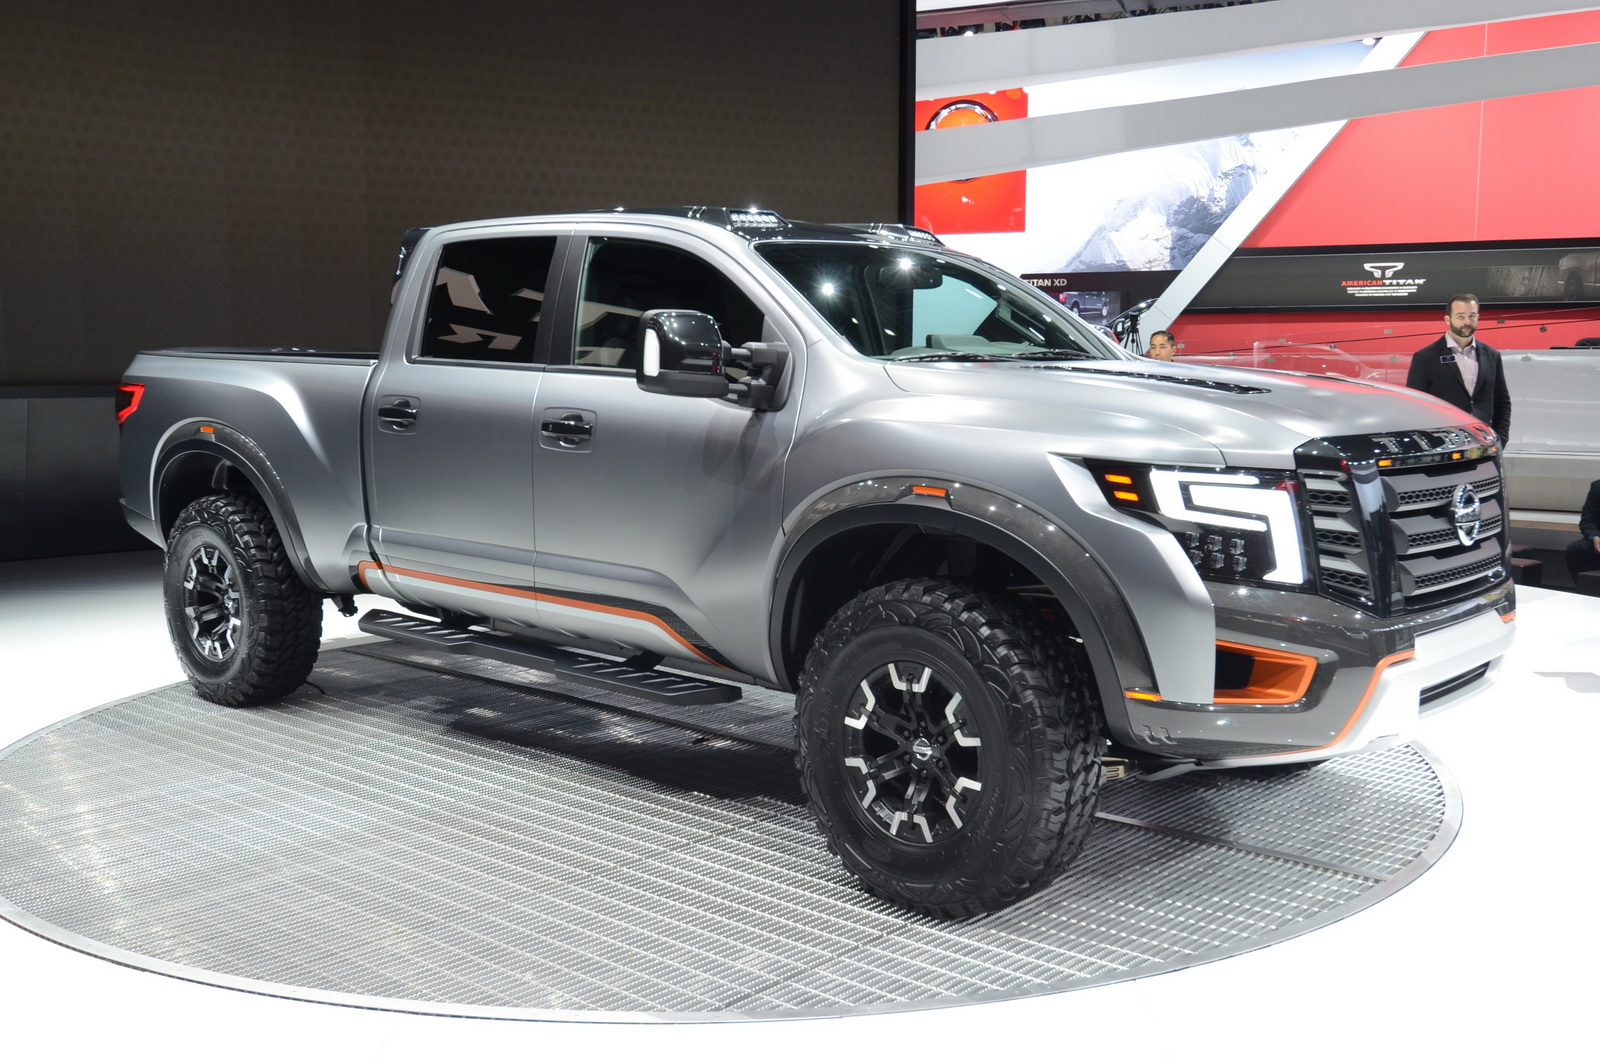 nissan s titan warrior concept is proof we need more baja inspired trucks carscoops. Black Bedroom Furniture Sets. Home Design Ideas